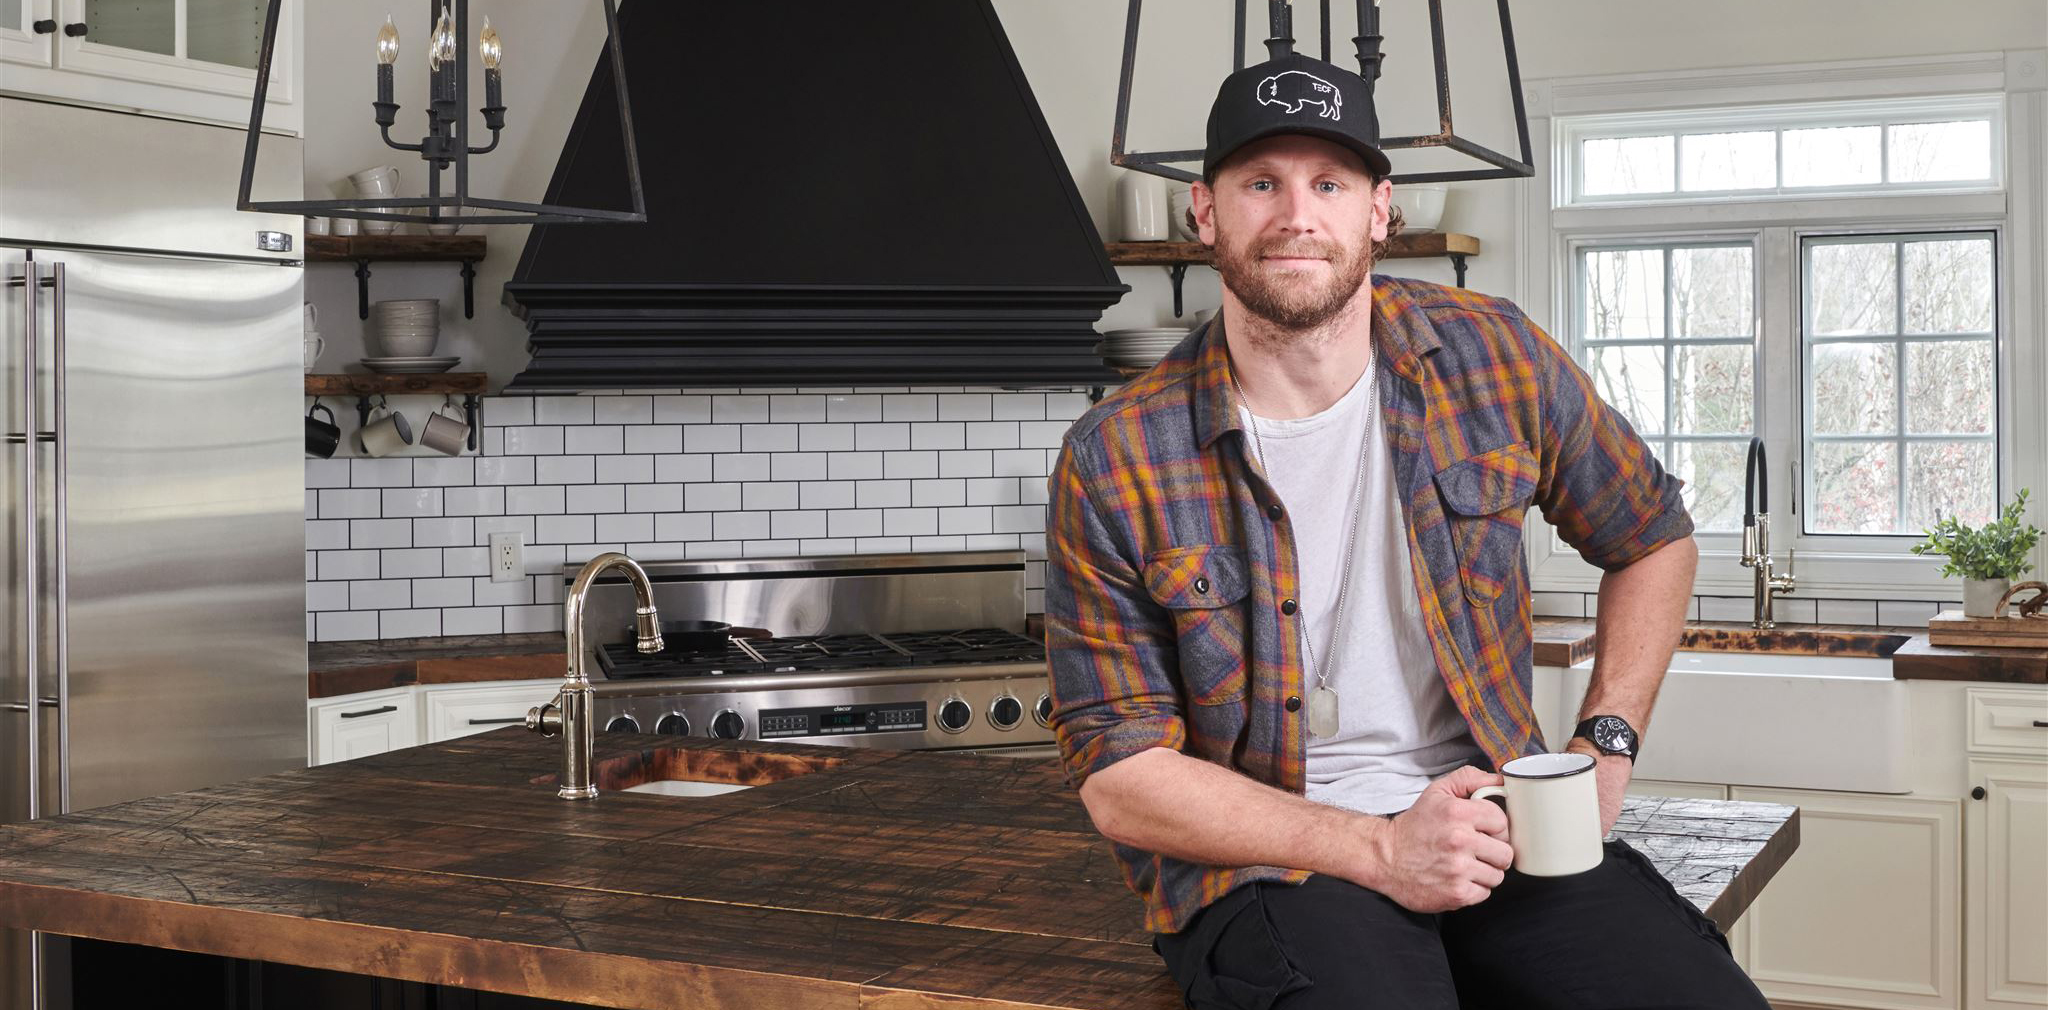 Chase Rice uses Olde Wood Limited products